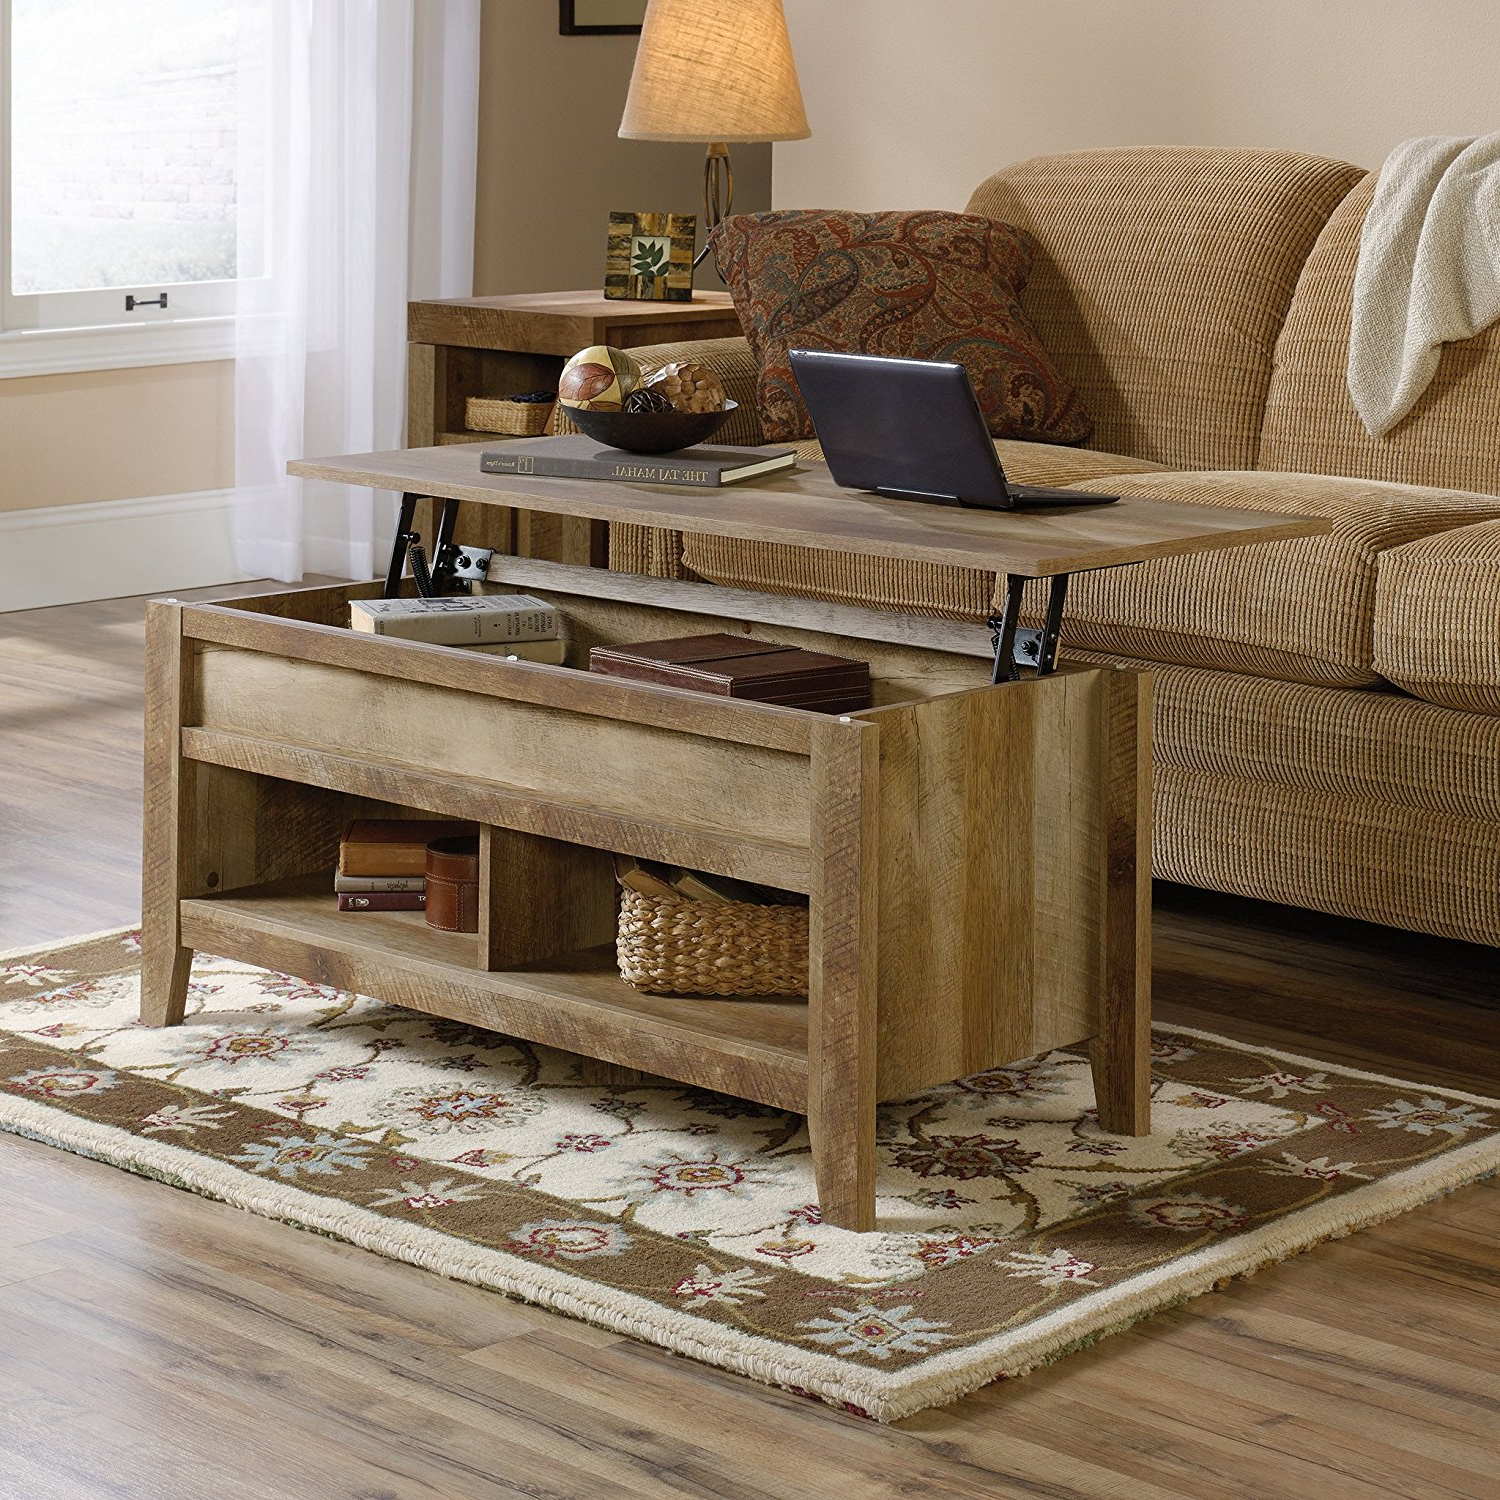 Top 10 Best Lift Top Coffee Tables In 2018 – Toptenreviewpro Intended For Widely Used Market Lift Top Cocktail Tables (View 17 of 20)